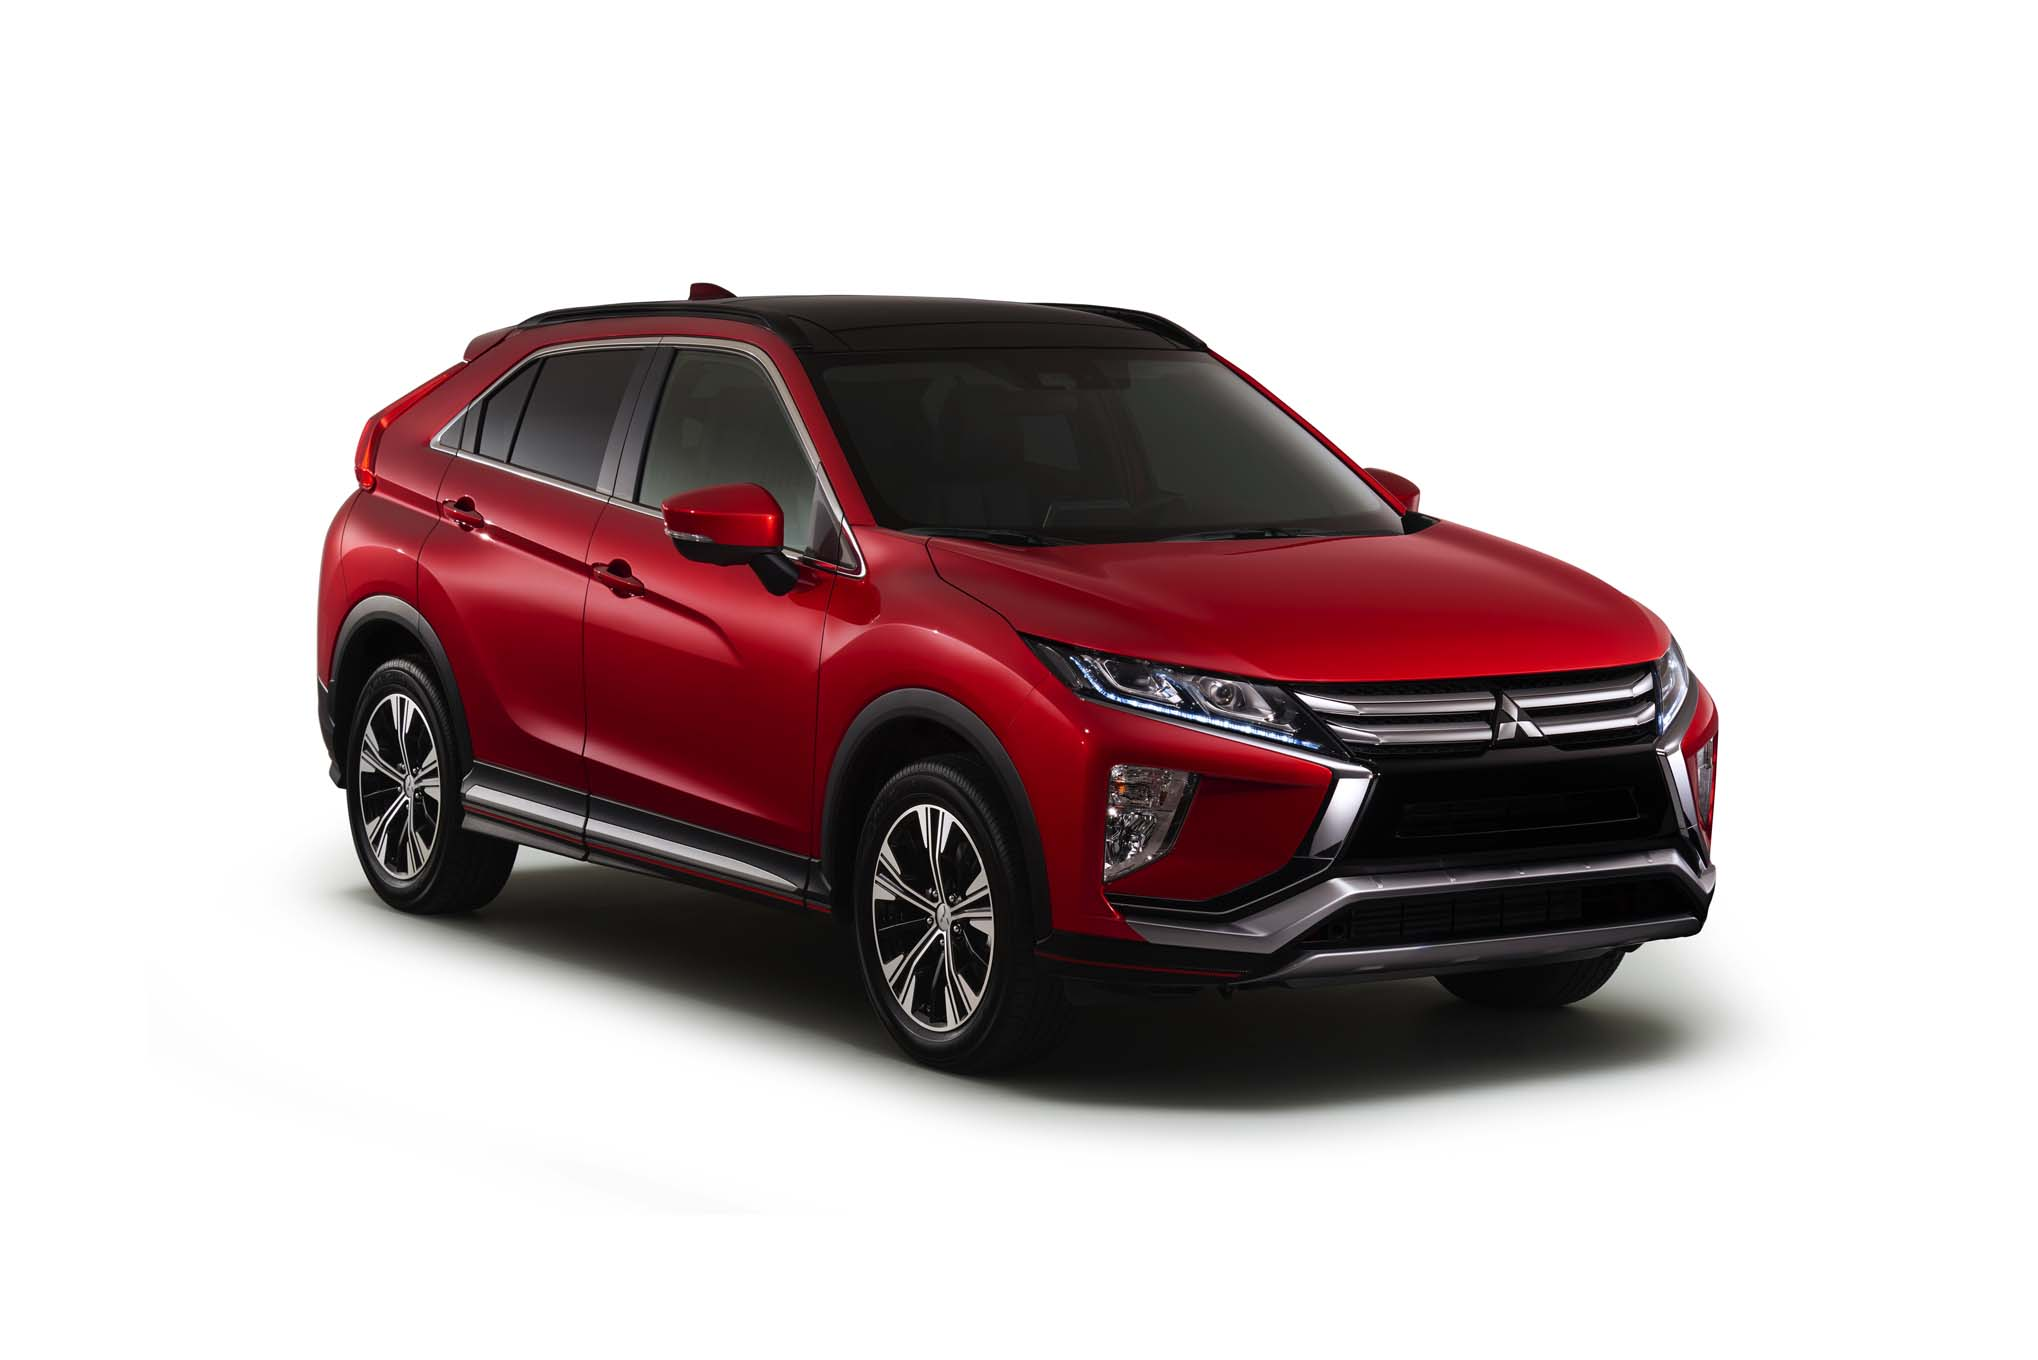 2018-Mitsubishi-Eclipse-Cross-front-three-quarter-02